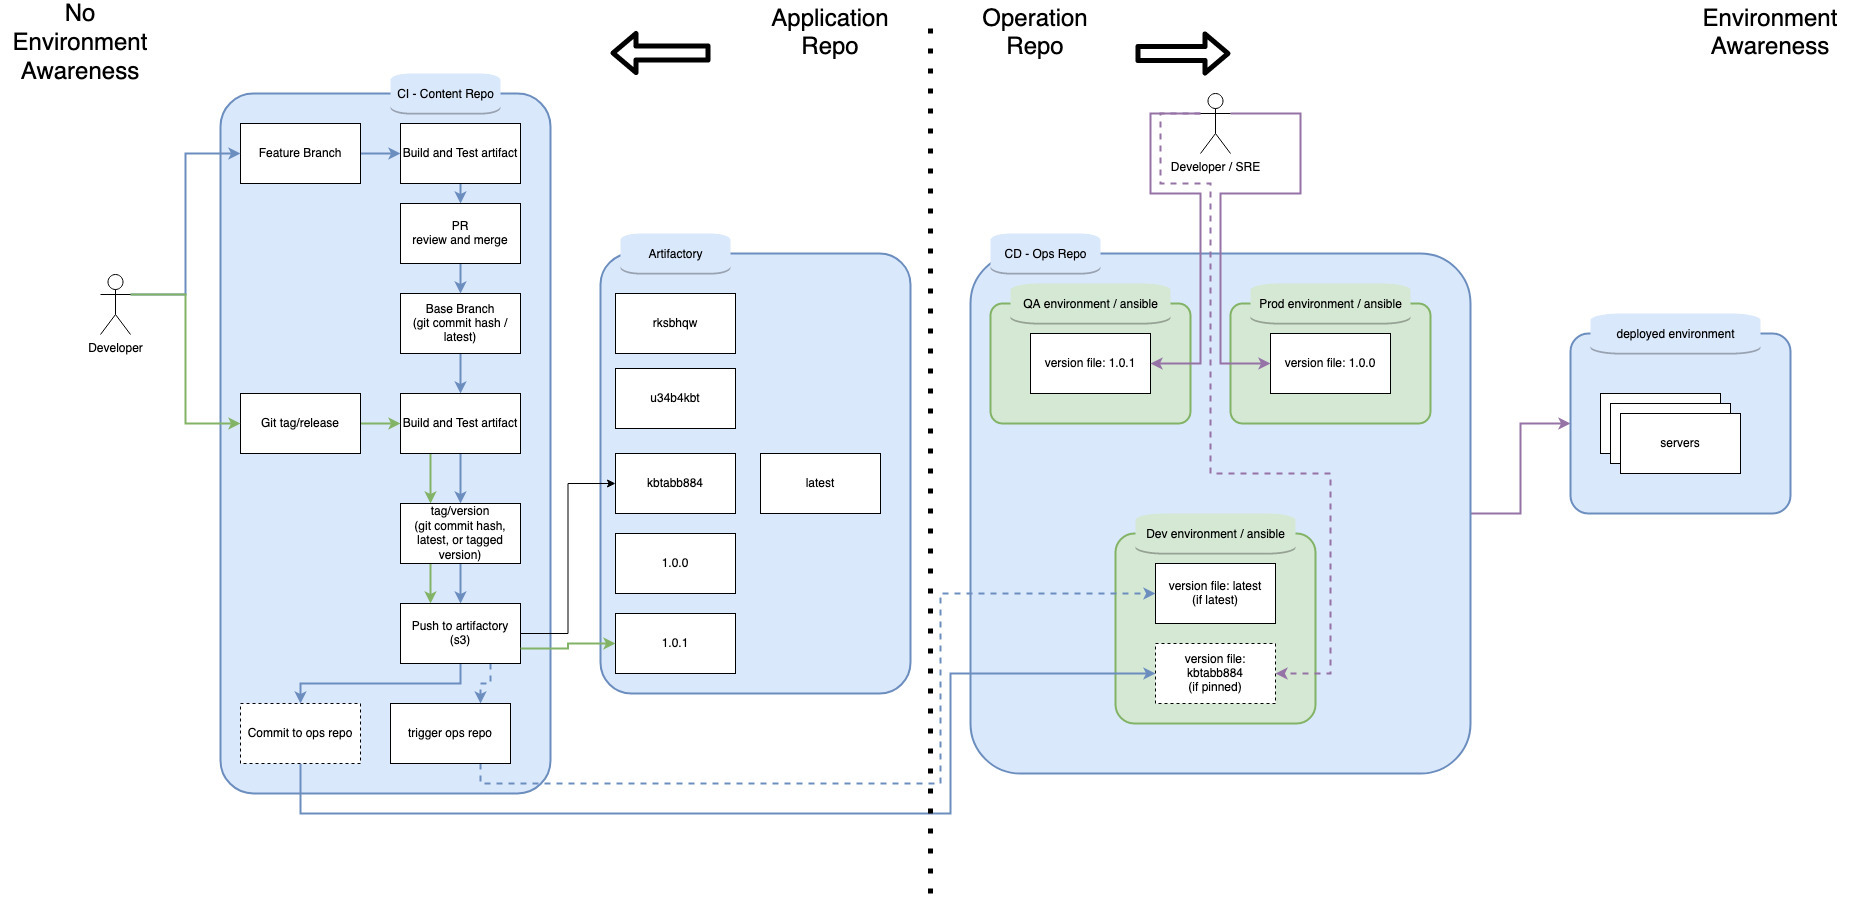 Separated application and operation repos